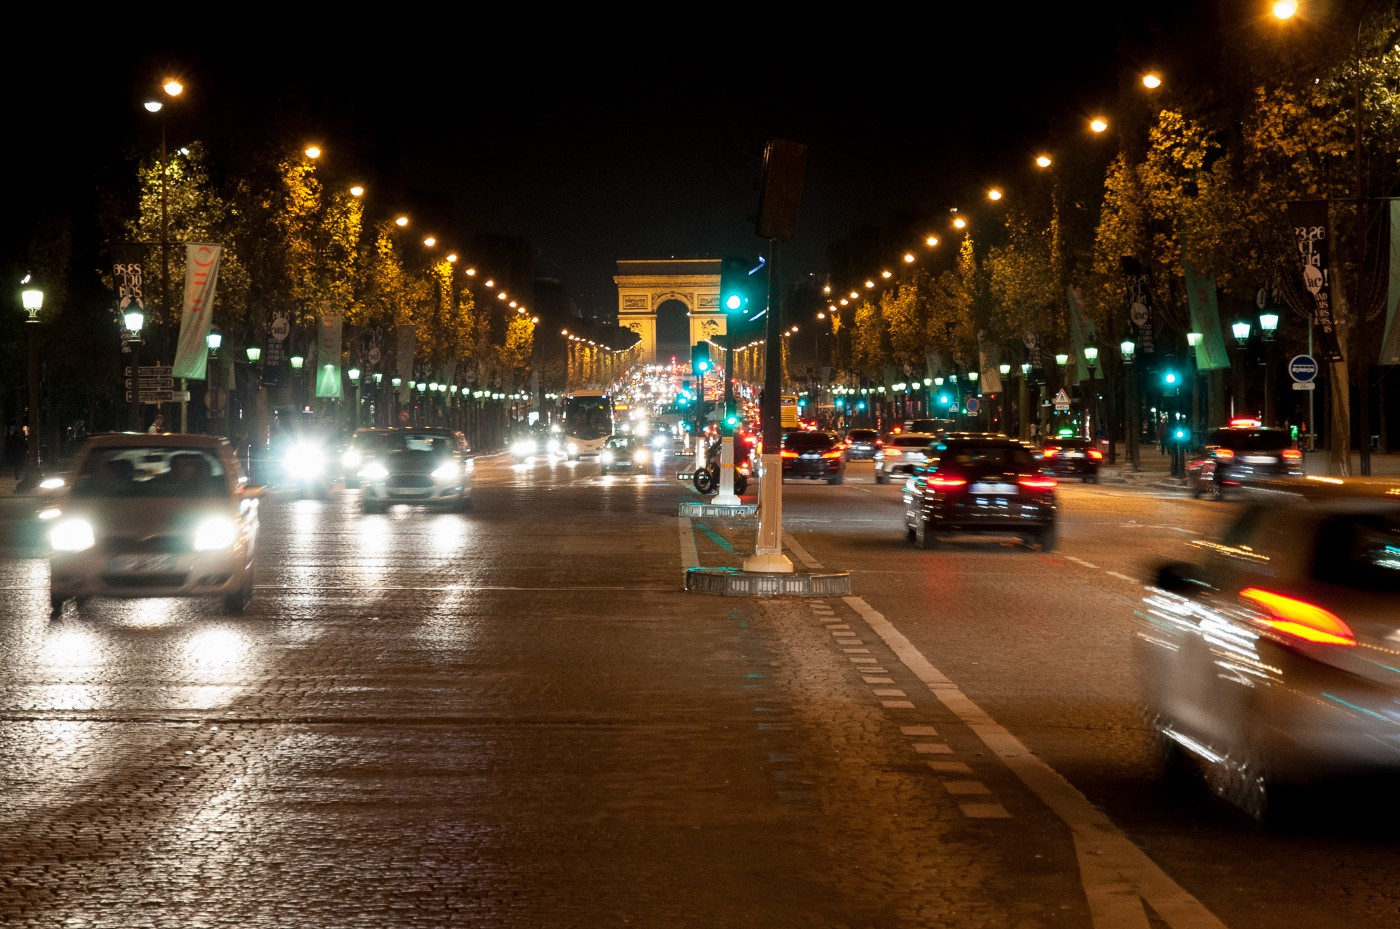 The Champs-Élysées at night, with fast-moving traffic going both ways.